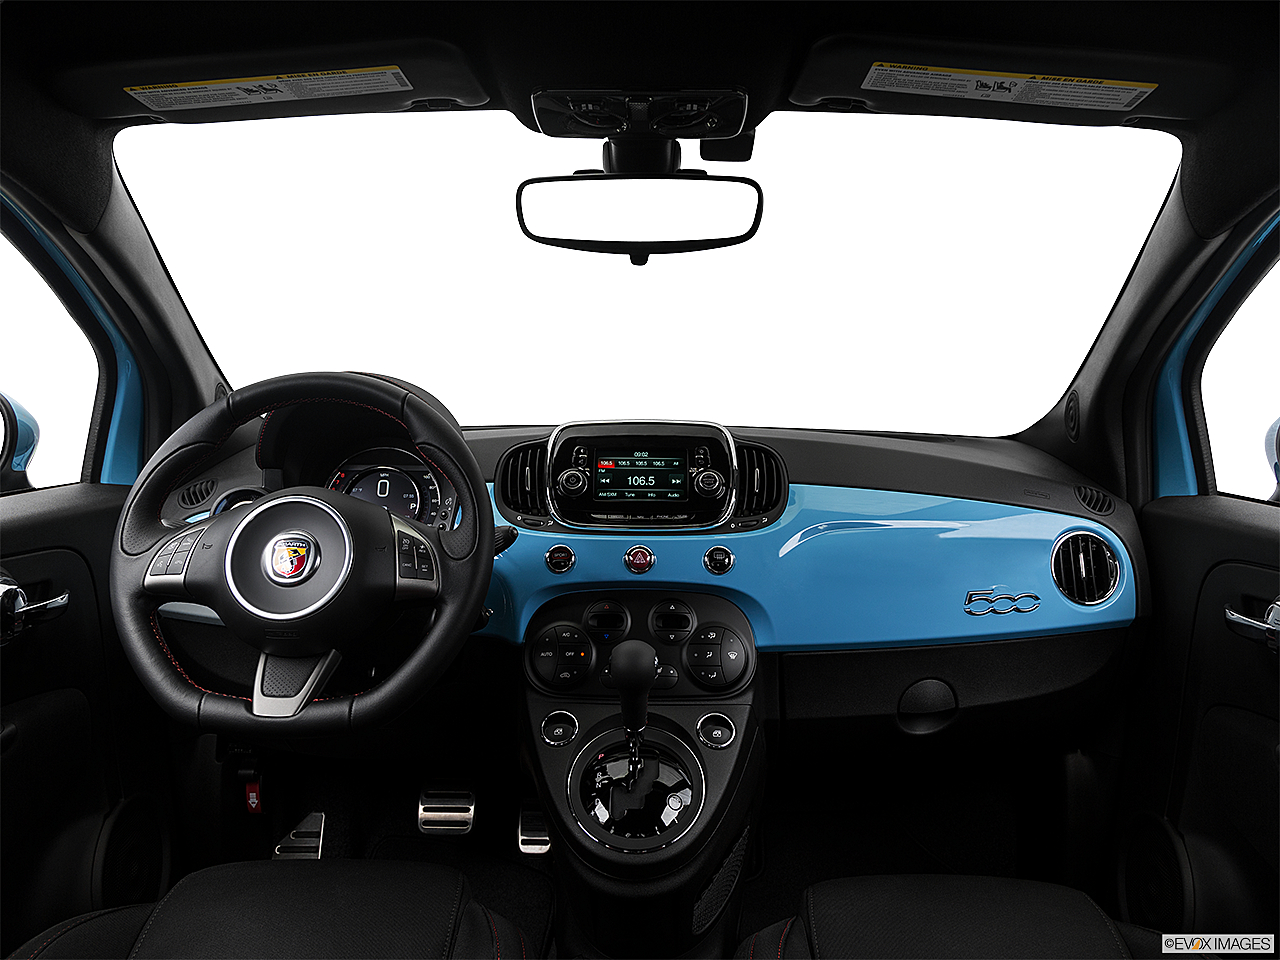 2017 FIAT 500 Pop 2dr Hatchback - Research - GrooveCar Fiat Wide on fiat croma, fiat convertible, fiat linea, fiat models, fiat 126p, fiat 500e, fiat 500c, fiat palio, fiat ducato, fiat hatchback, fiat cinquecento, fiat doblo, fiat seicento,